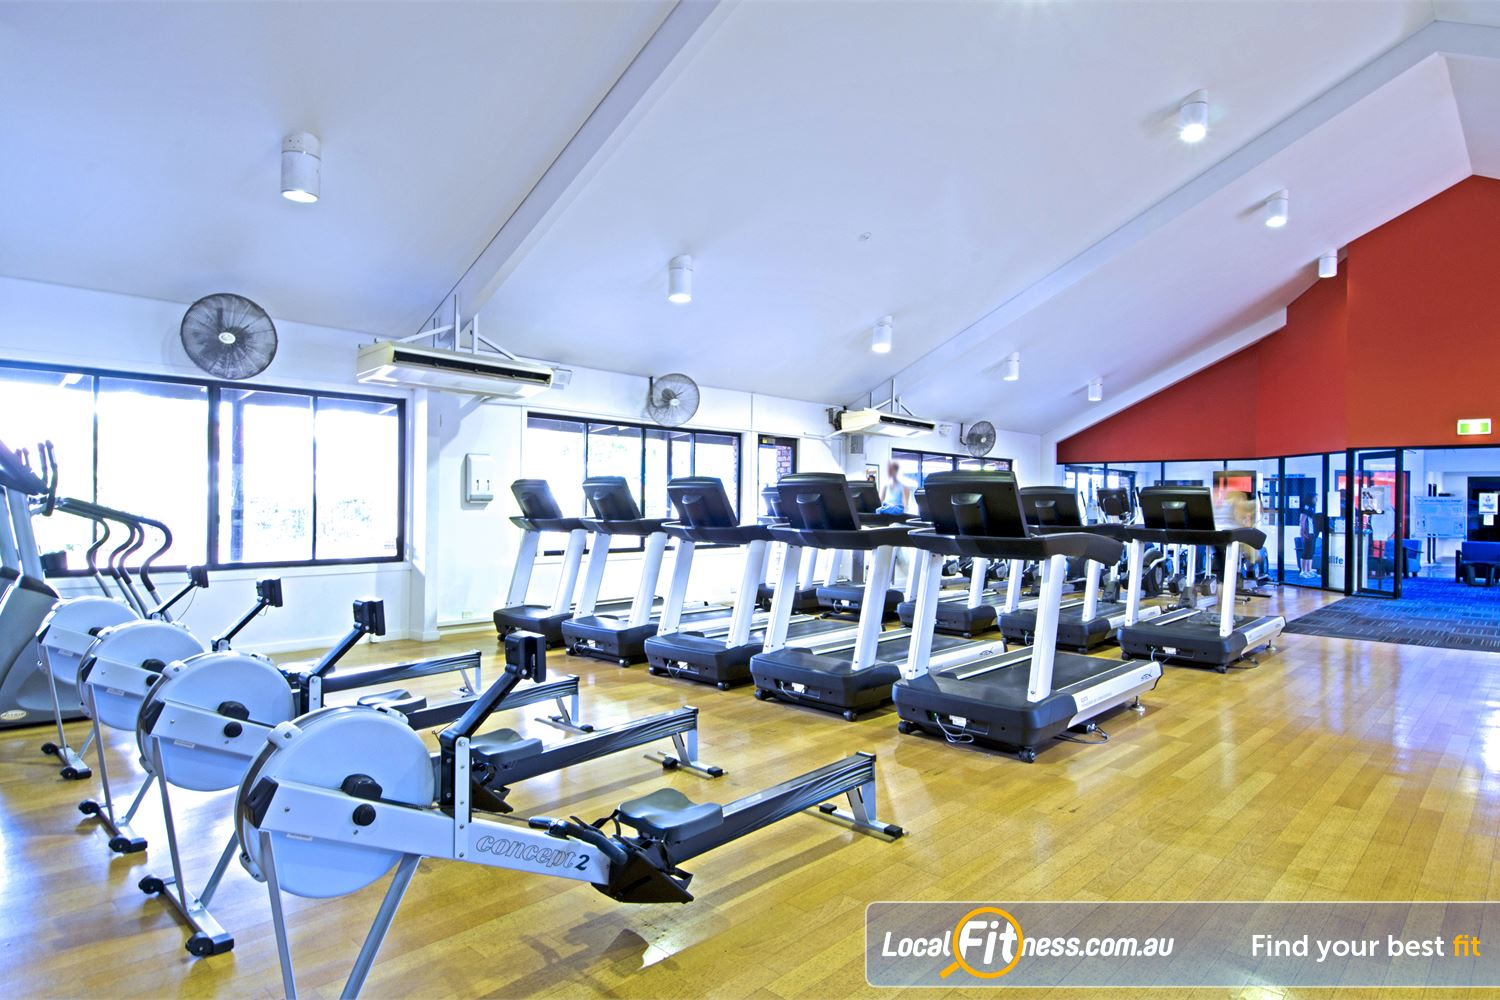 Goodlife Health Clubs Carseldine Tune into your favourite shows on your personalised LCD screen or cardio theatre.